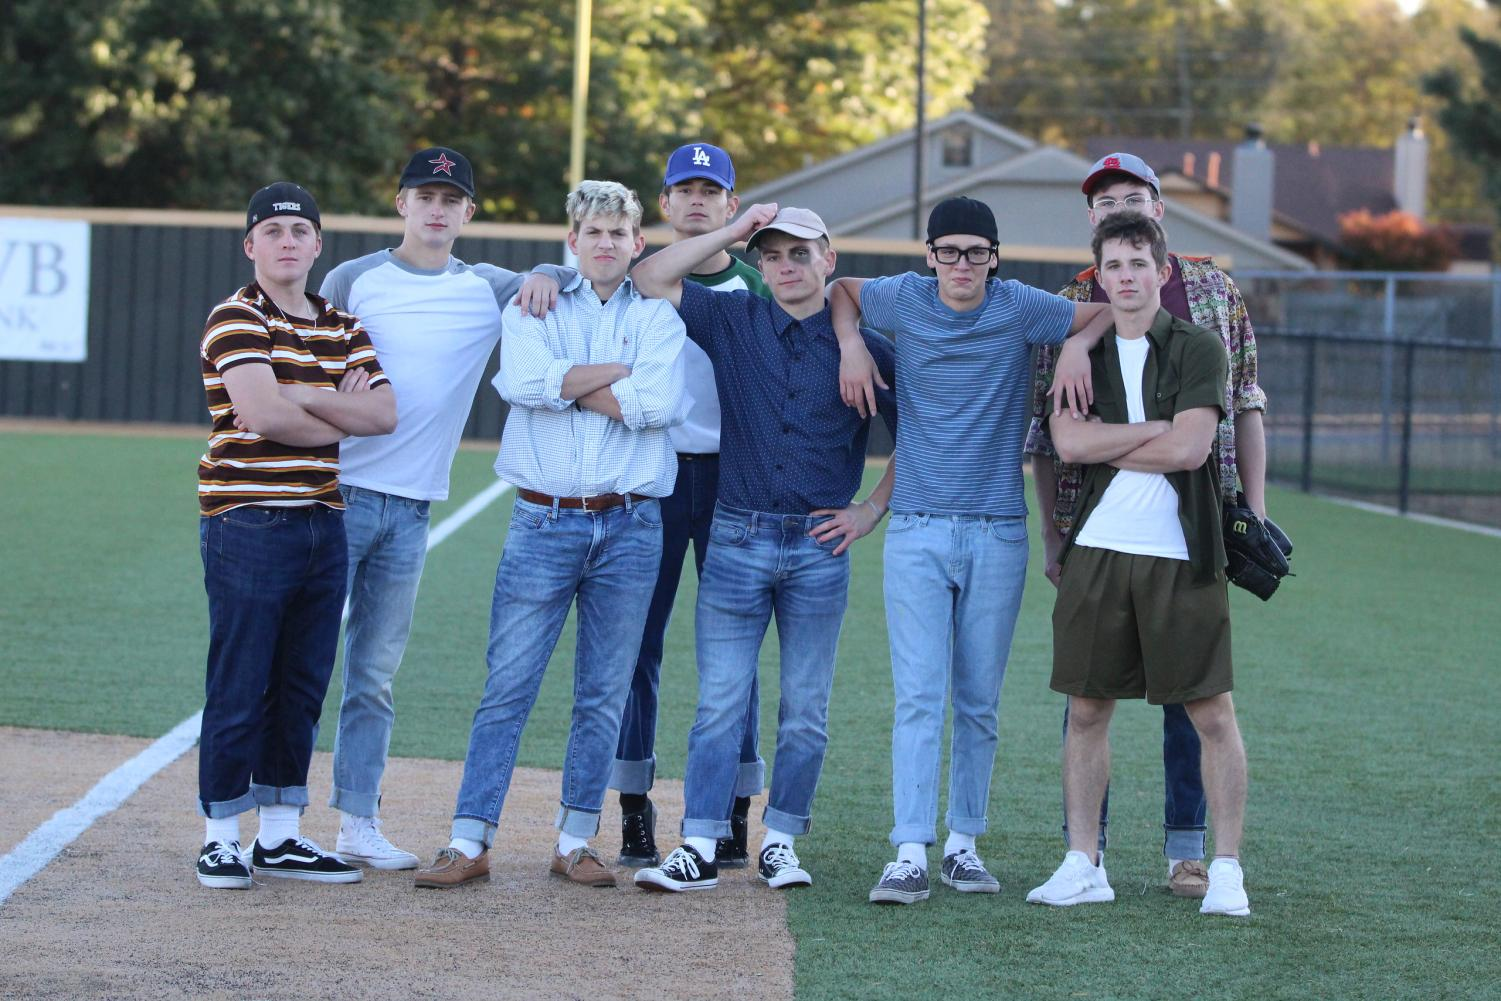 Dressed as the Sandlot crew, baseball players pose for a photo.